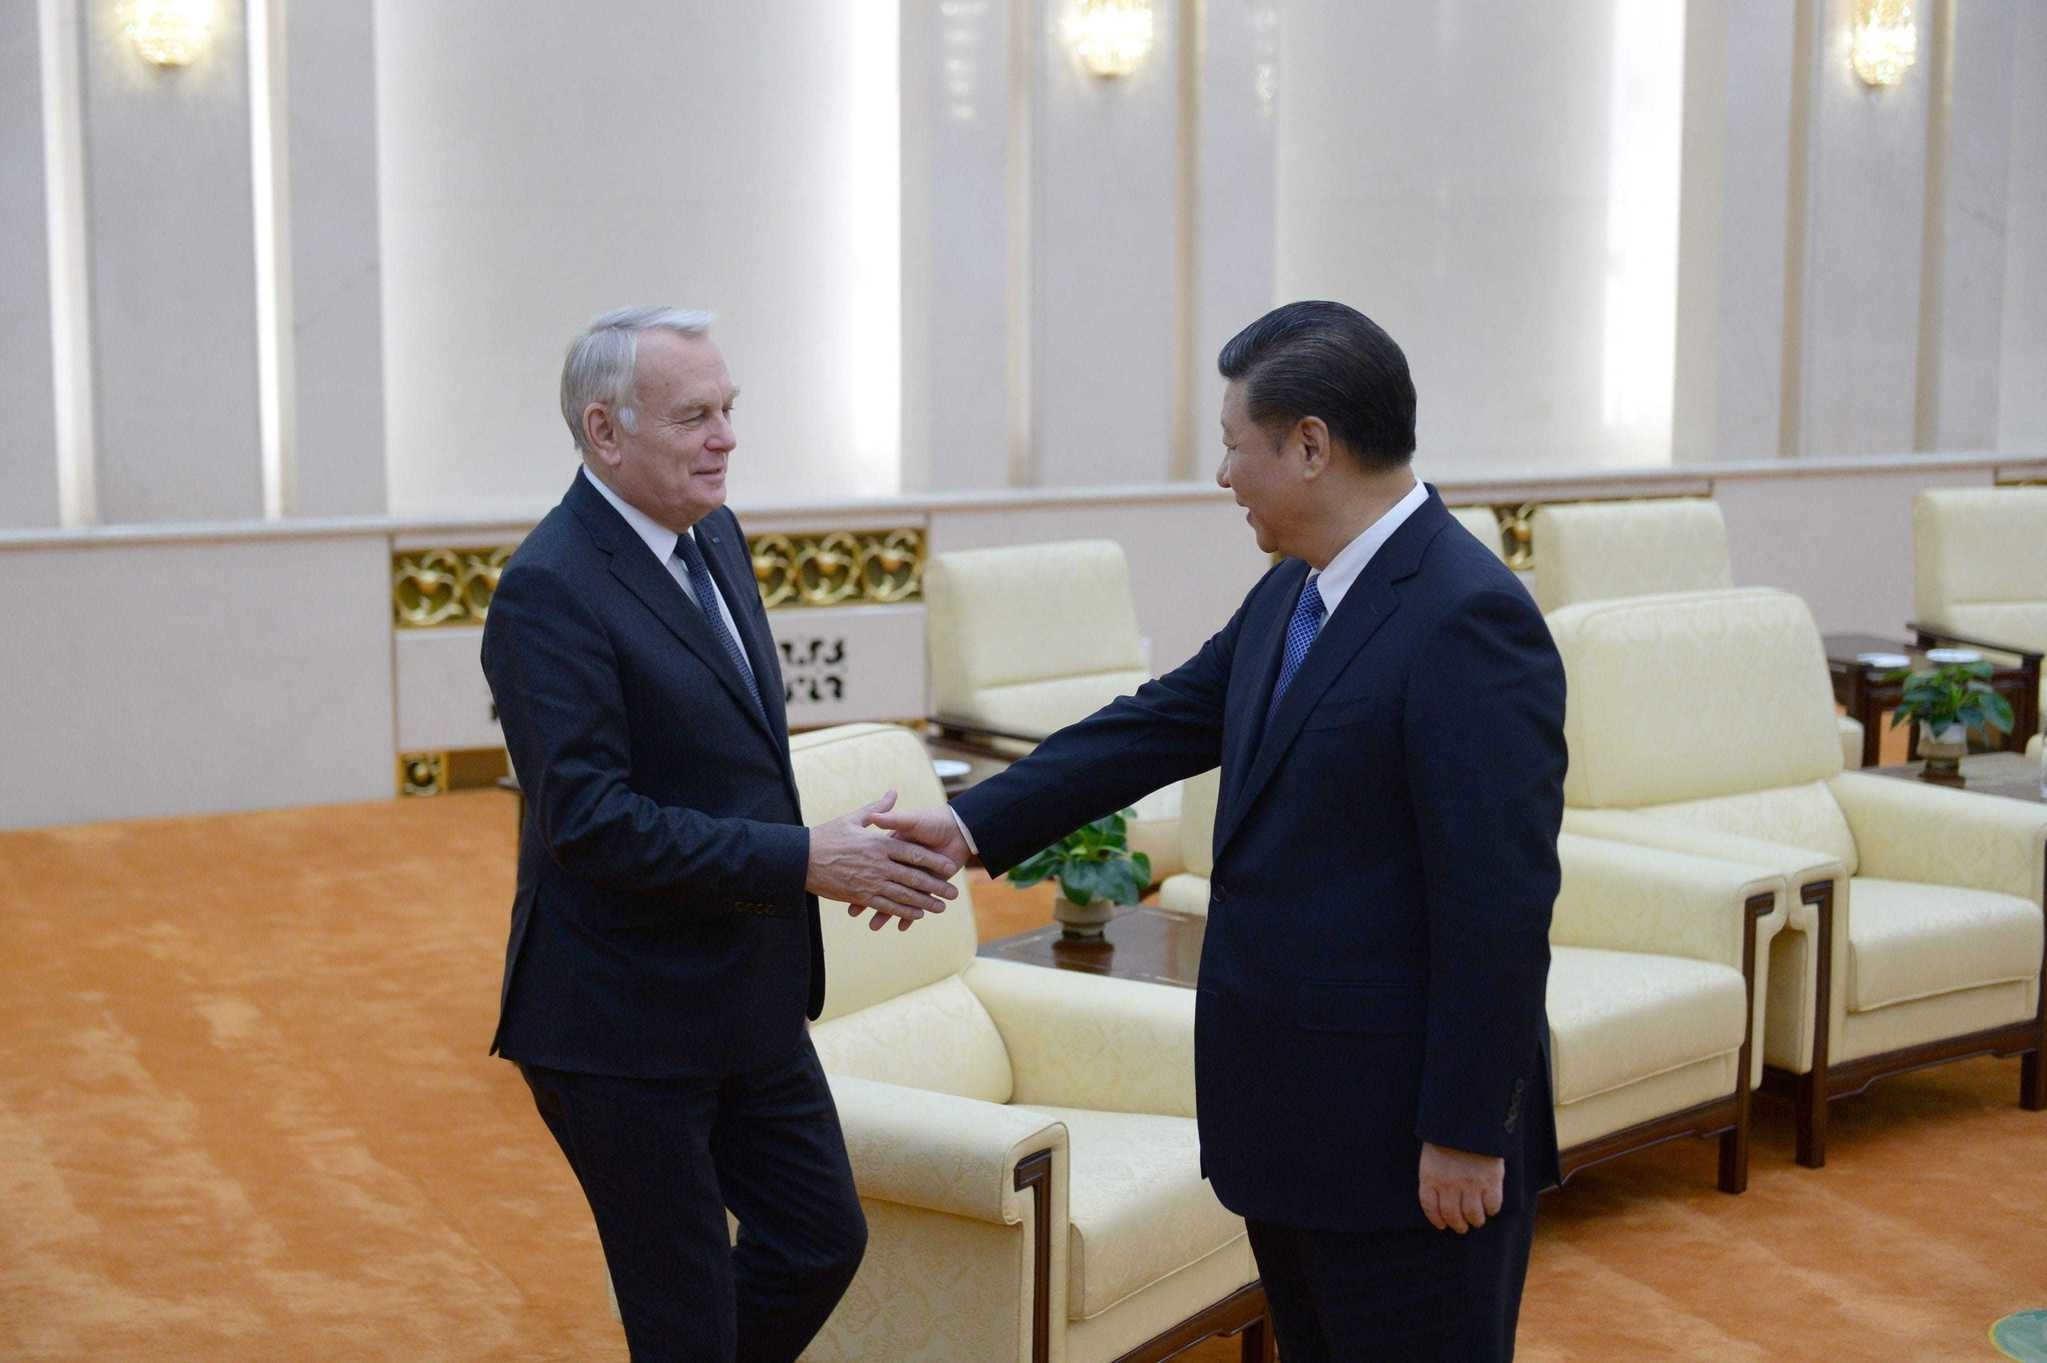 Chinese President Xi Jinping (R) shakes hands with French Foreign Minister Jean-Marc Ayrault ahead of their meeting at the Great Hall of the People in Beijing. The French foreign minister is on an official visit to China.